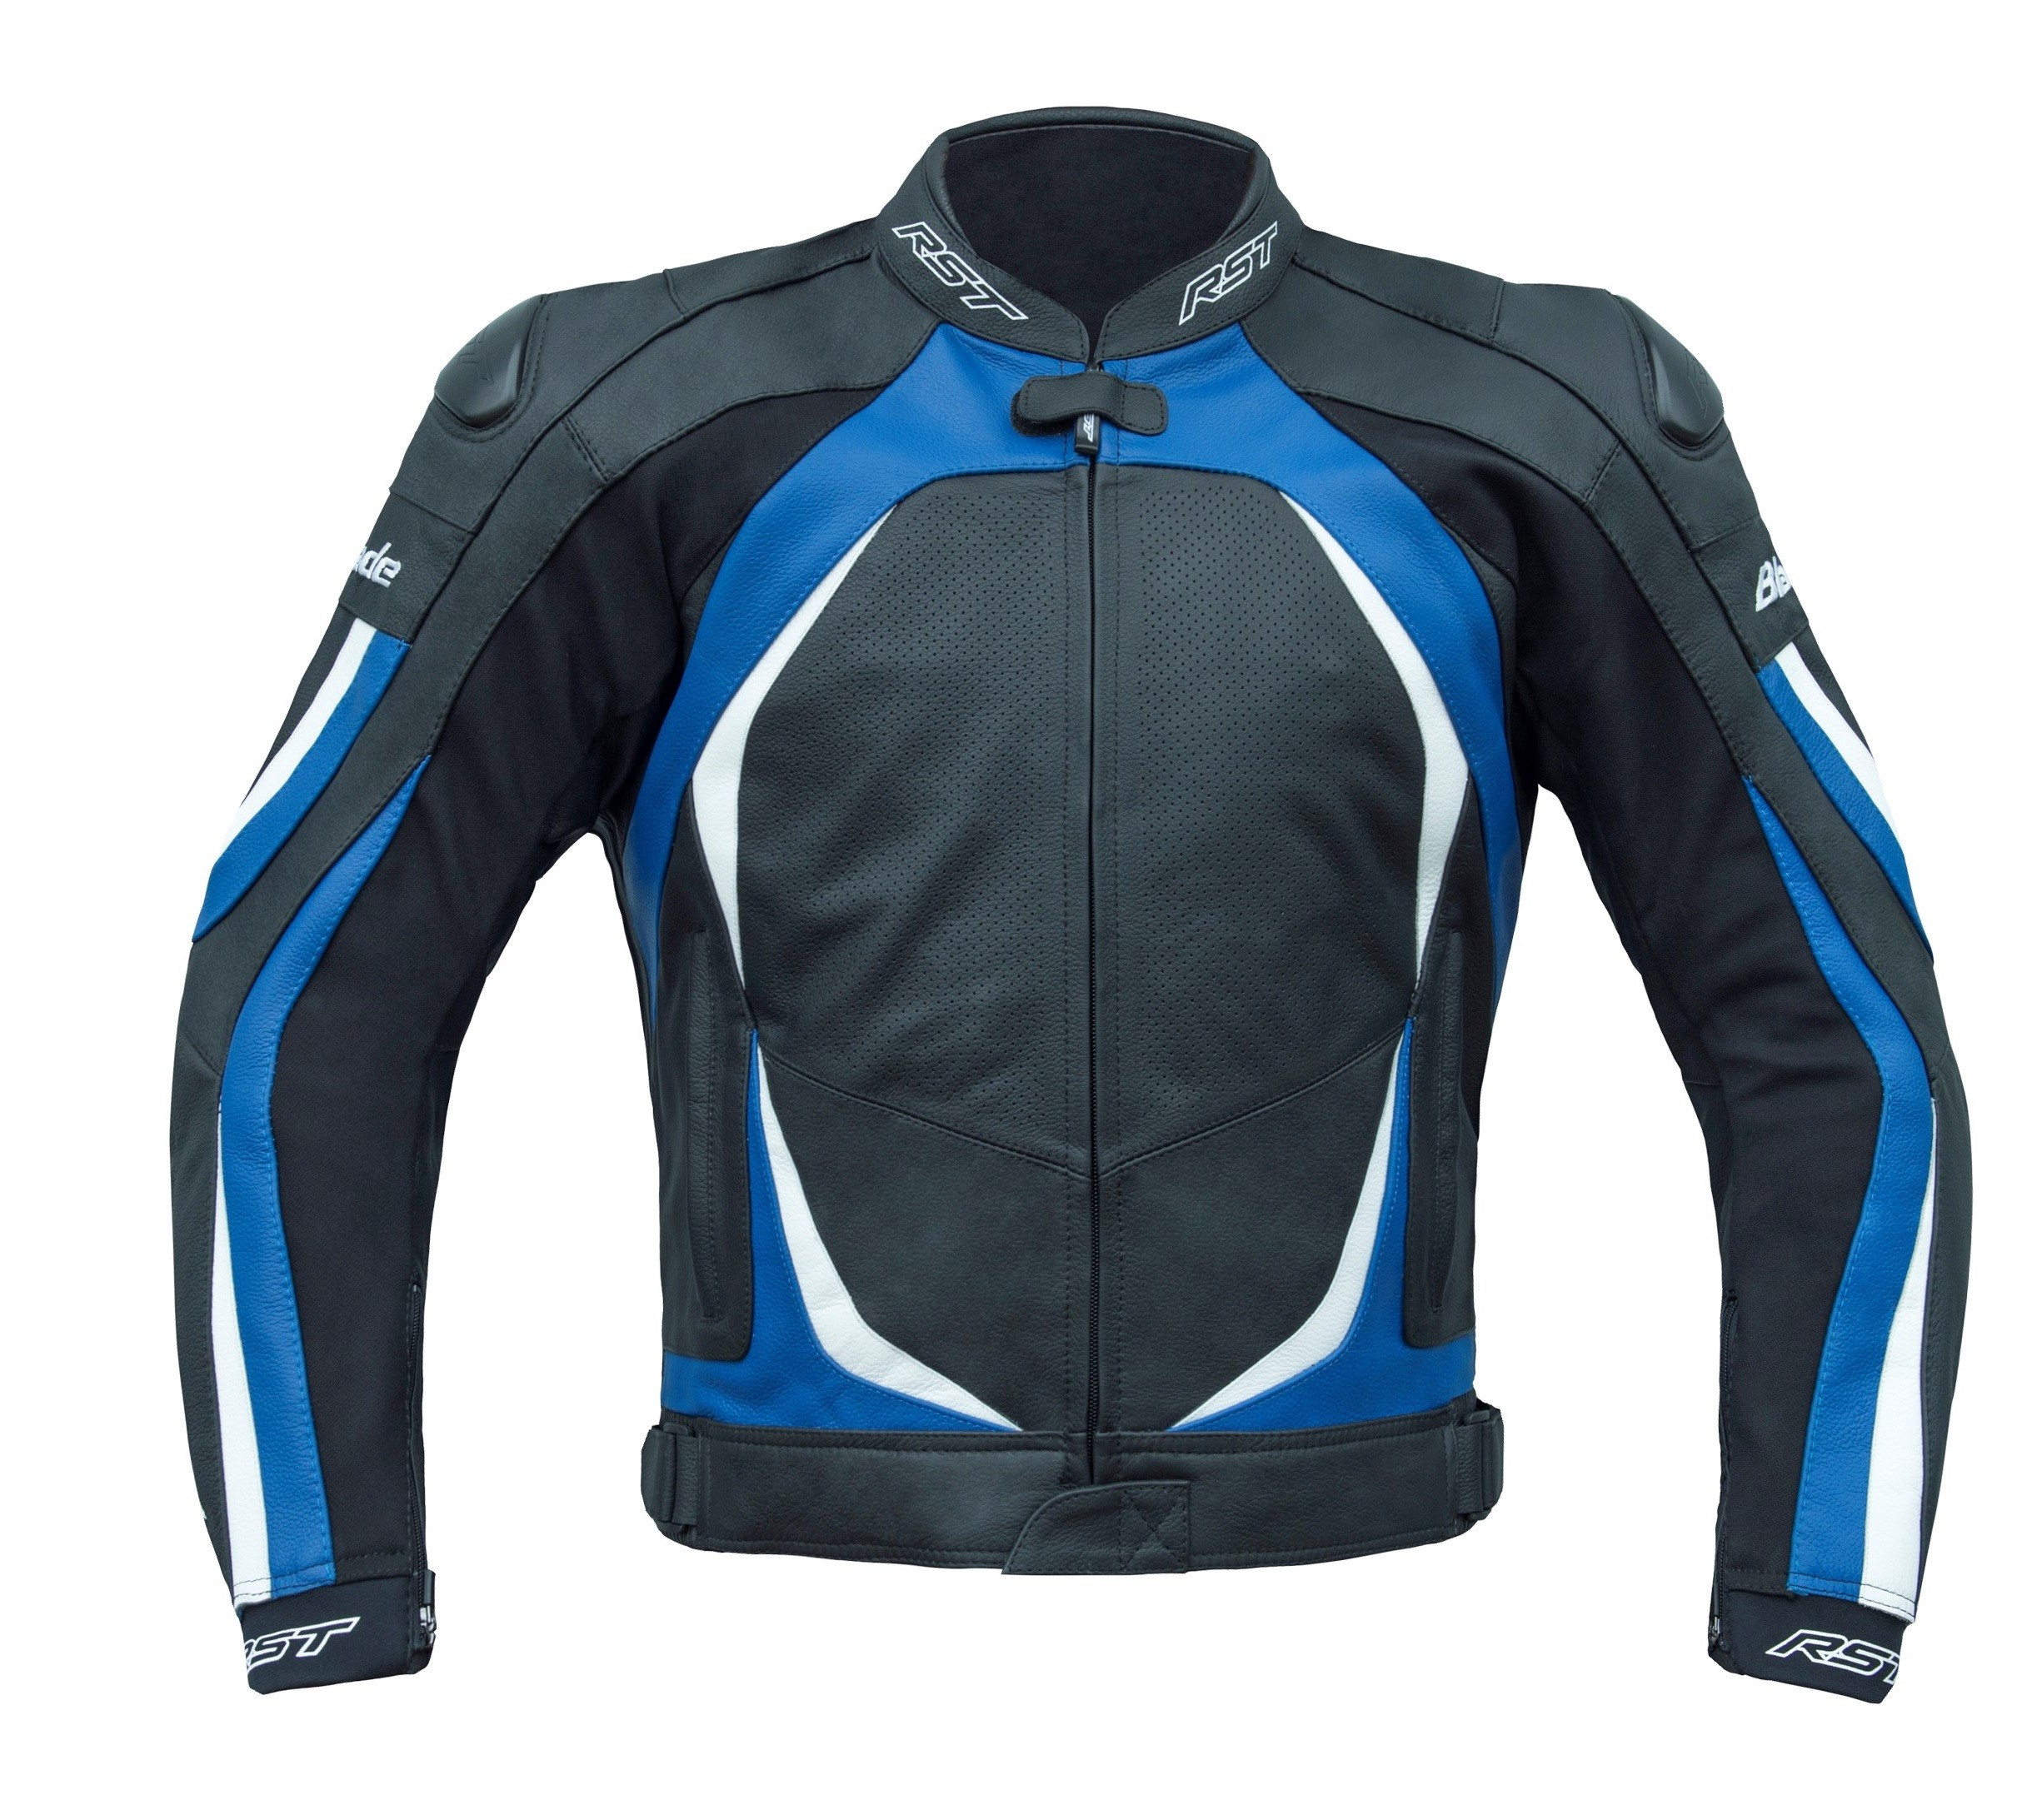 Rst leather jackets